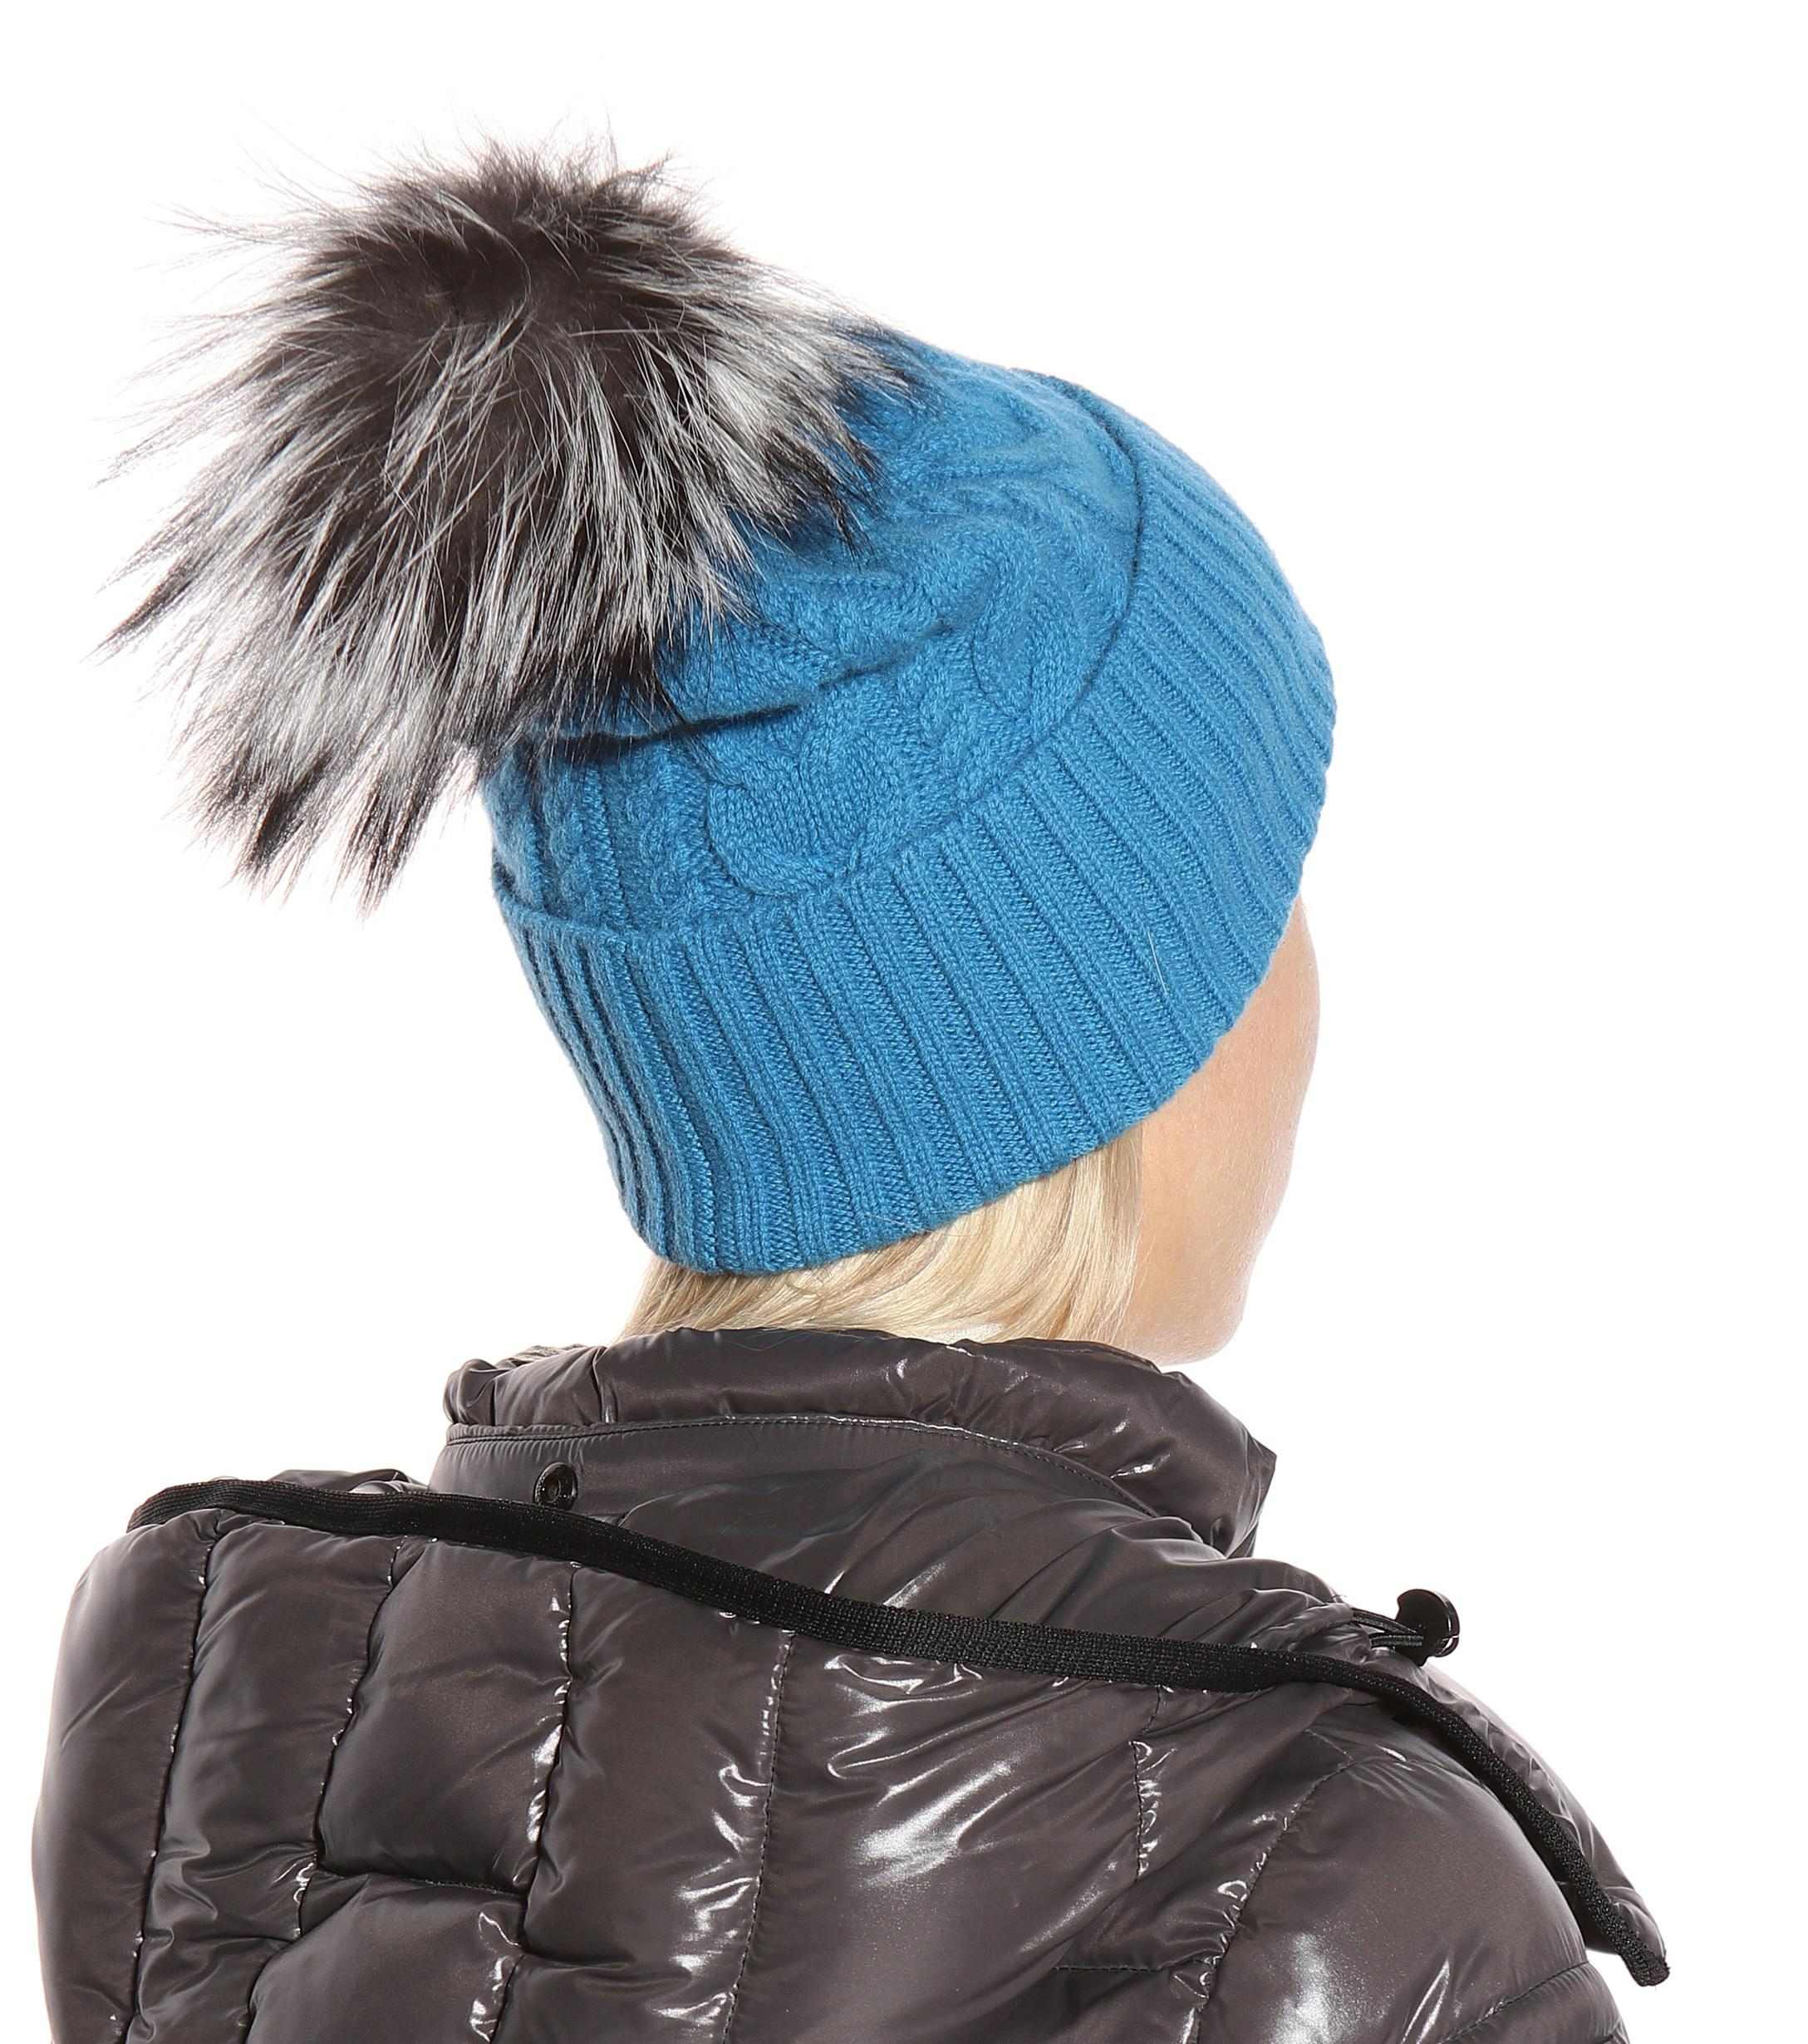 09c552472 Lyst - Moncler Fur-trimmed Wool-blend Beanie in Blue